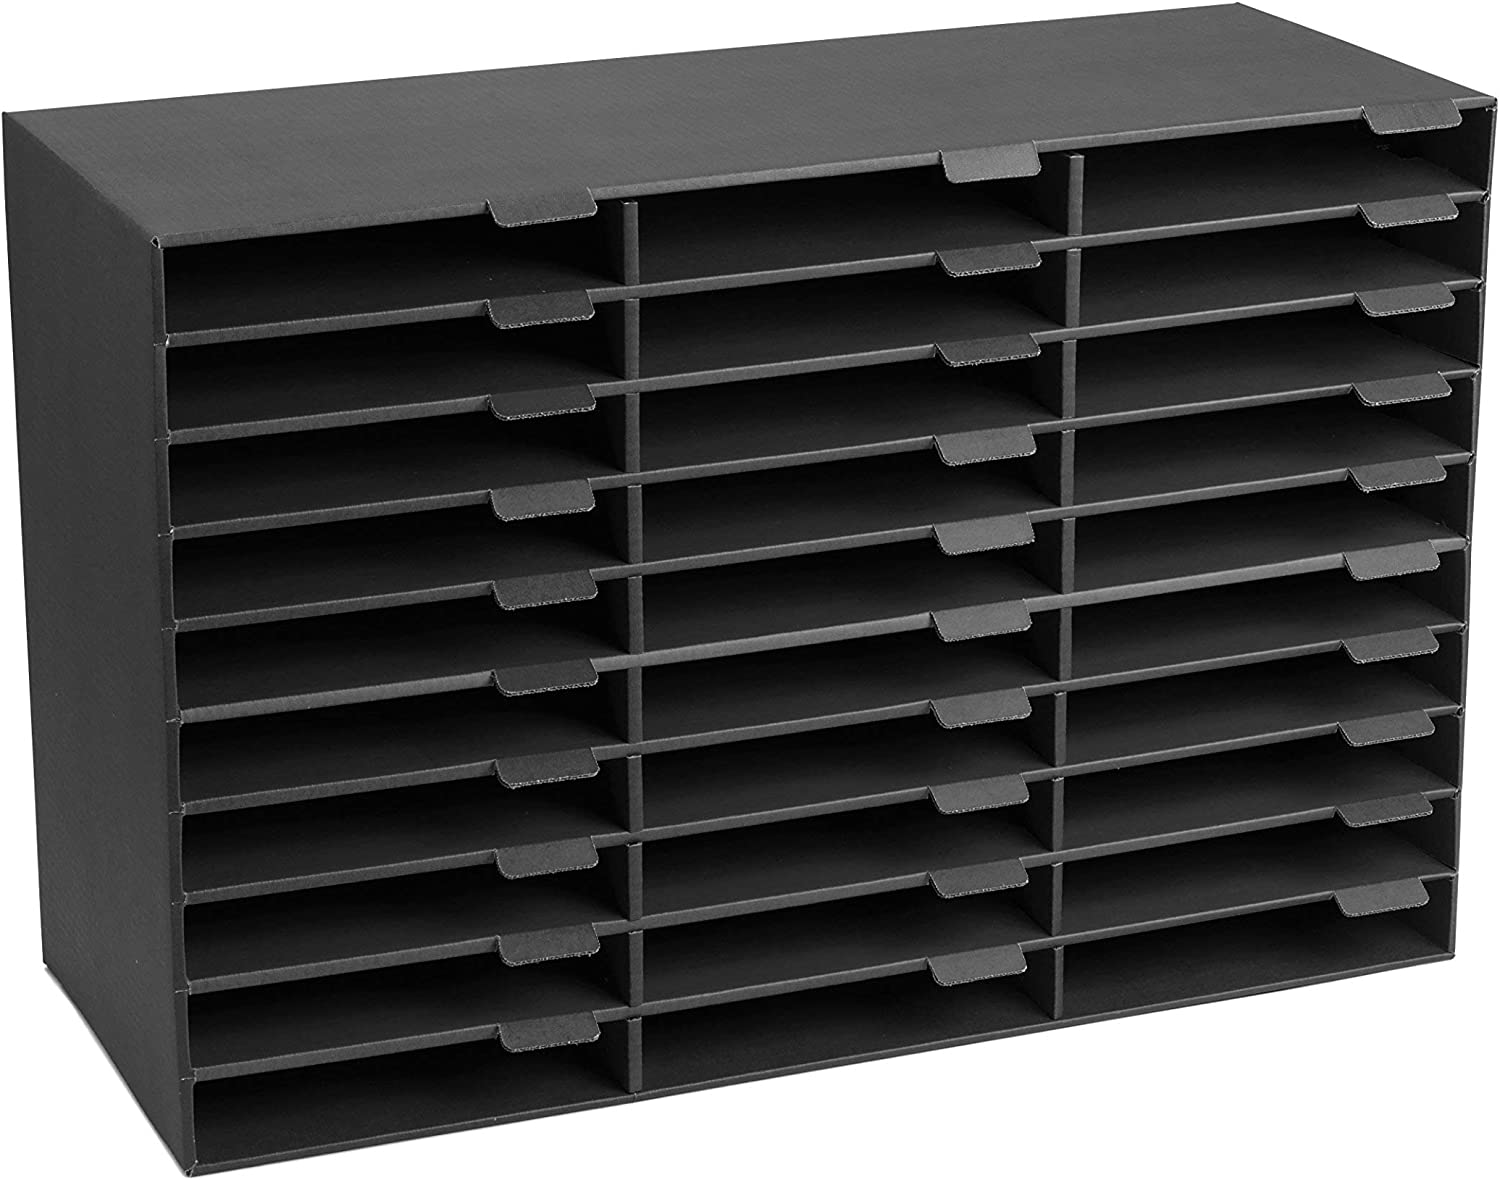 AdirOffice File Organizer Classroom - Office - Home - Corrugated Cardboard (30 Slots, Black)